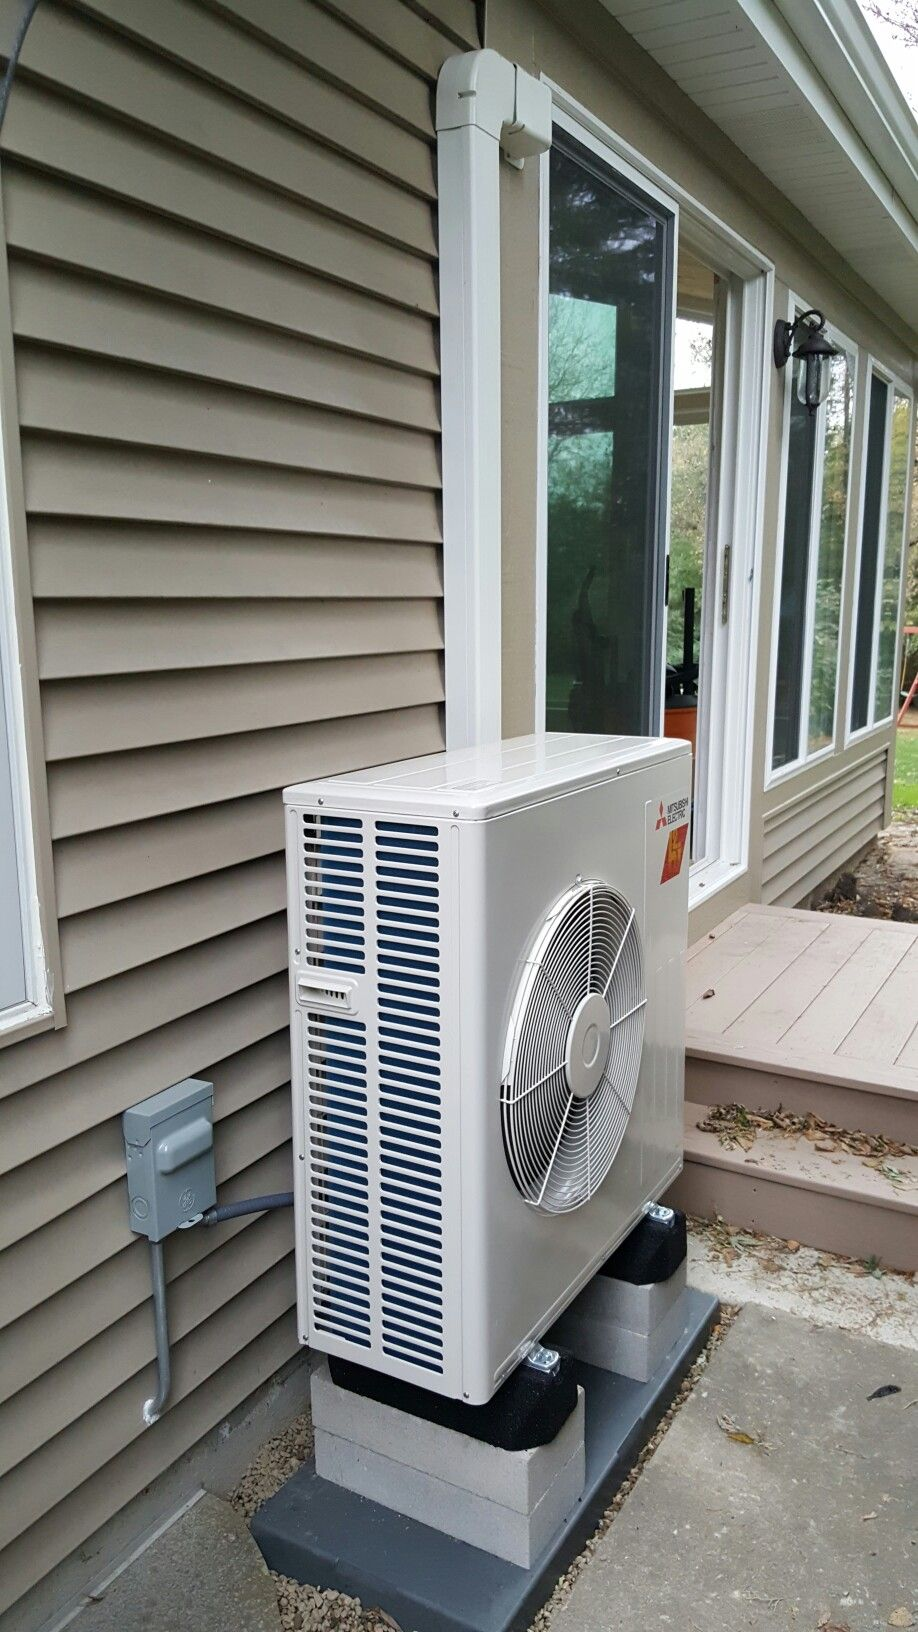 hight resolution of fh18 mitsubishi ductless heating and cooling system installed in a sunroom by a compass heating and air conditioning inc www compassheatingandair com